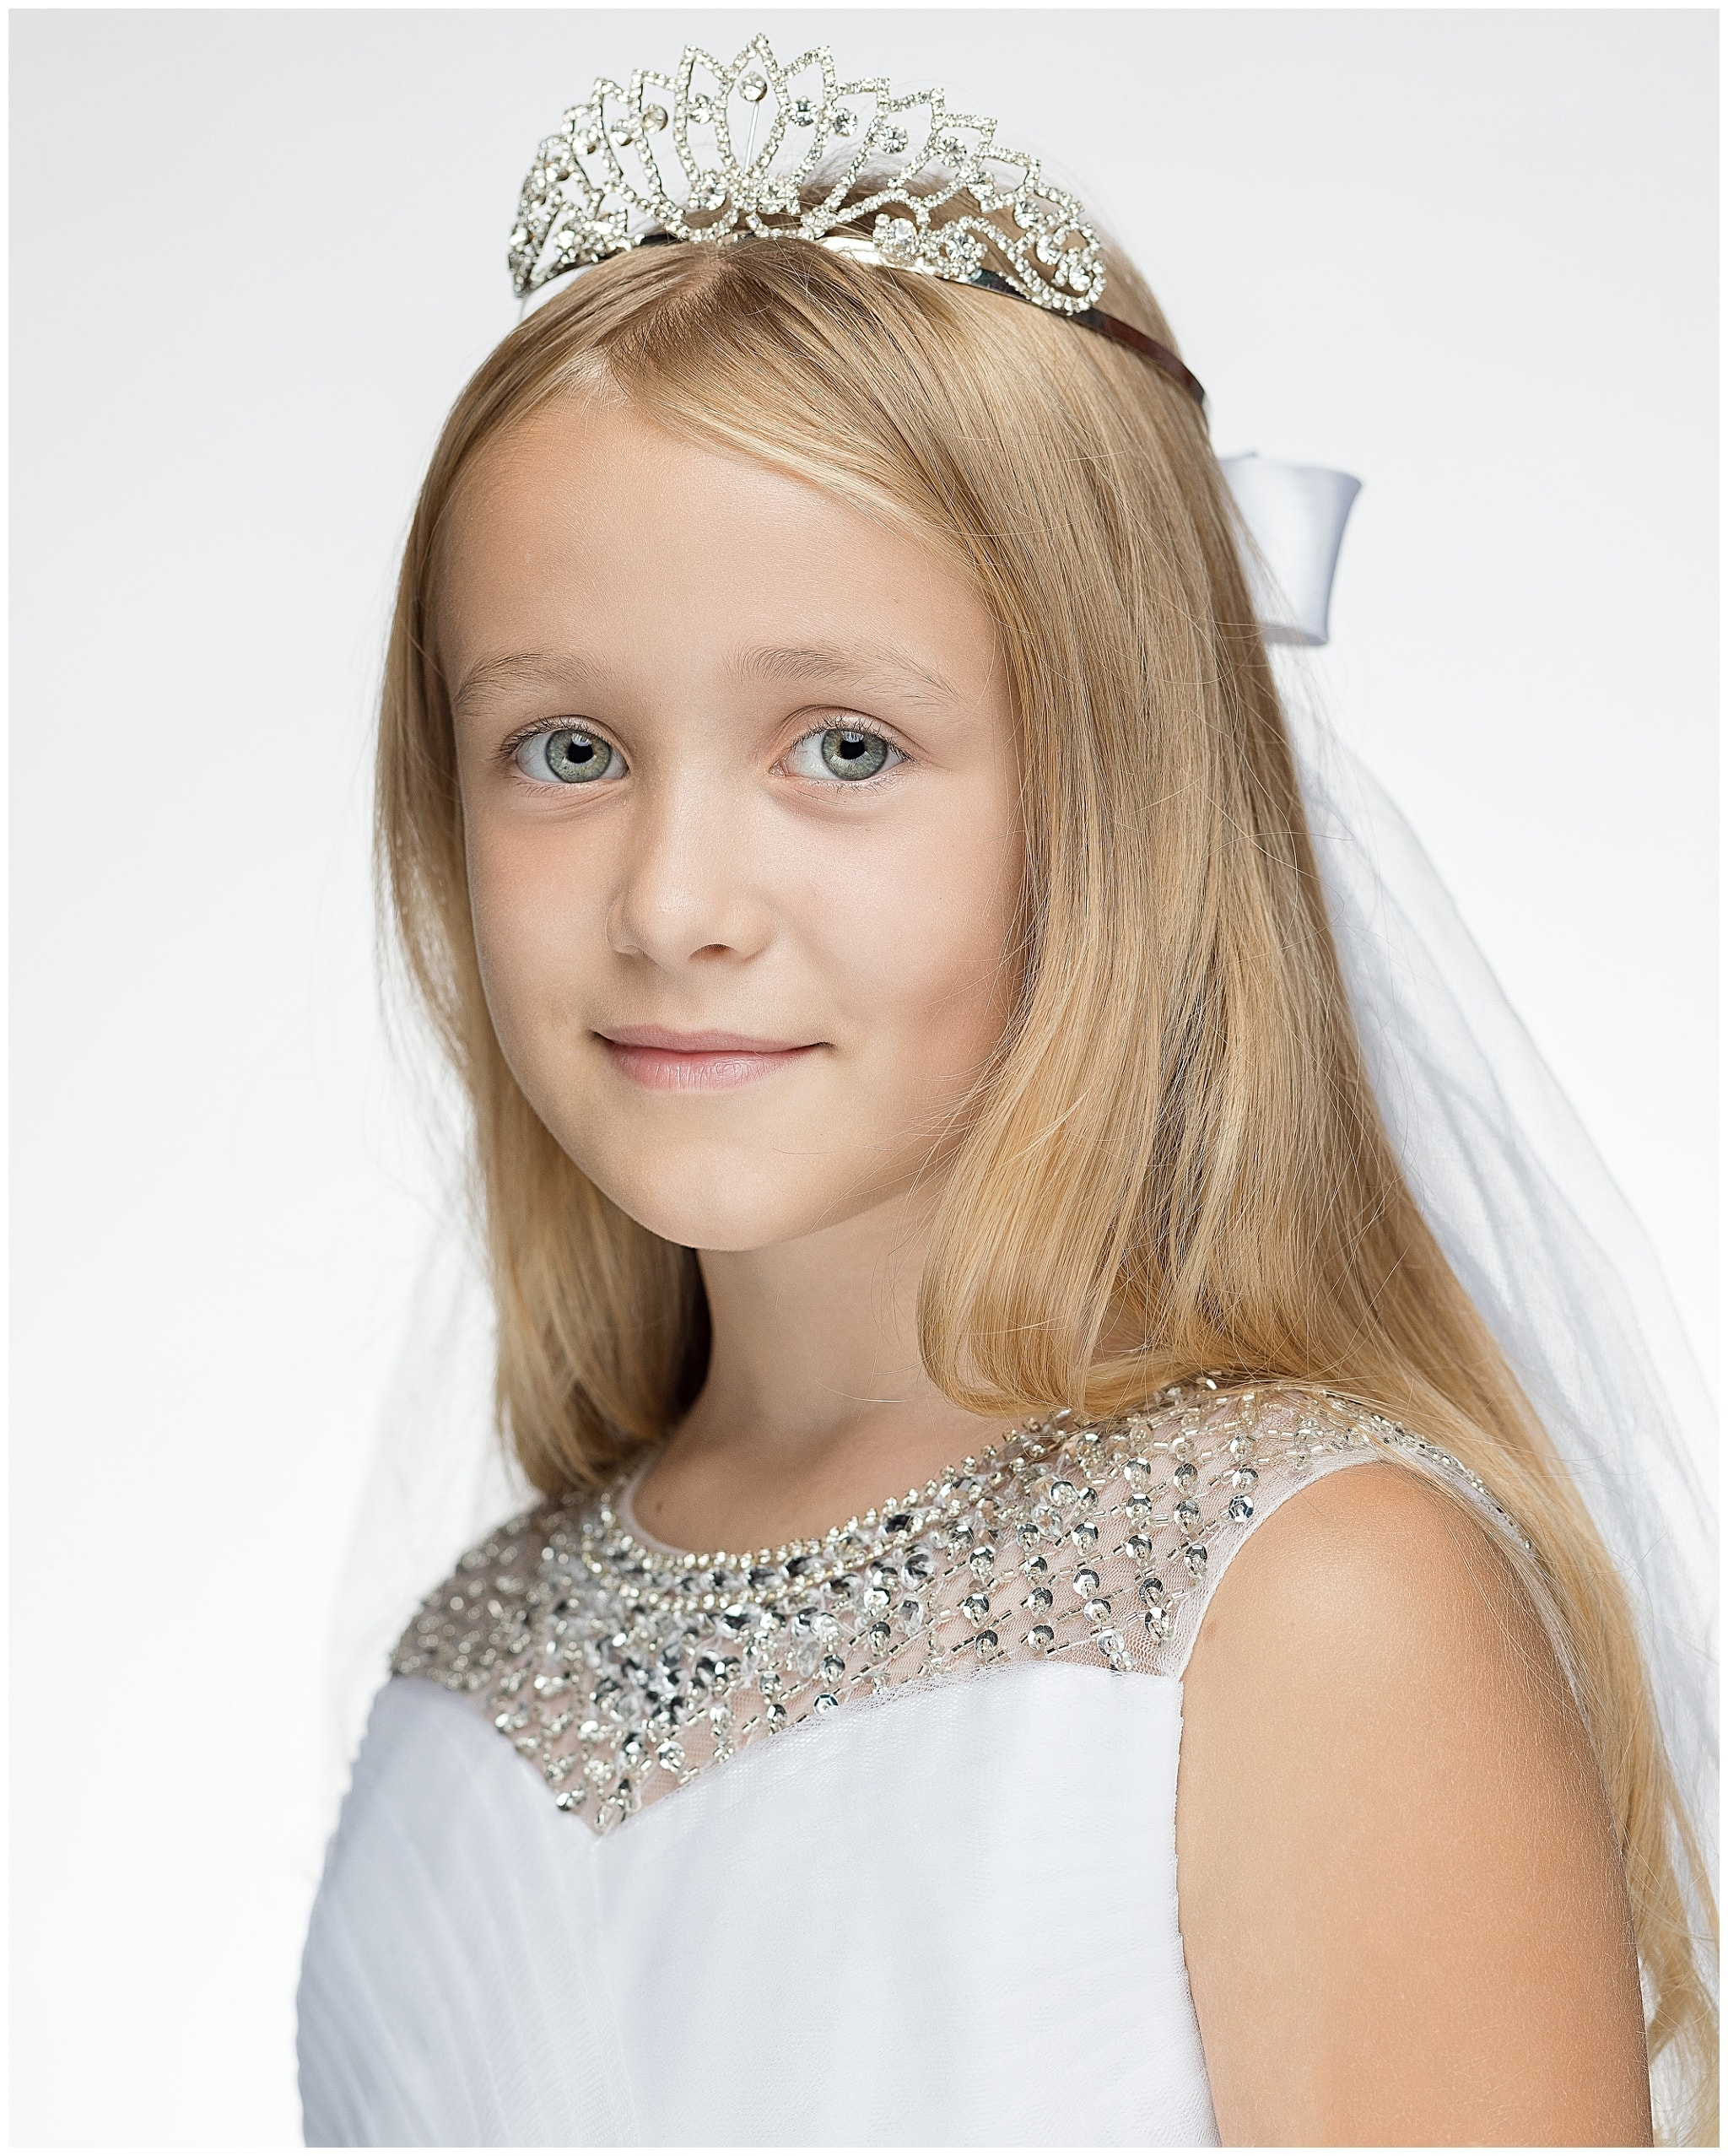 Are headshots for children? Think achievements & Milestones | First Communion Pictures